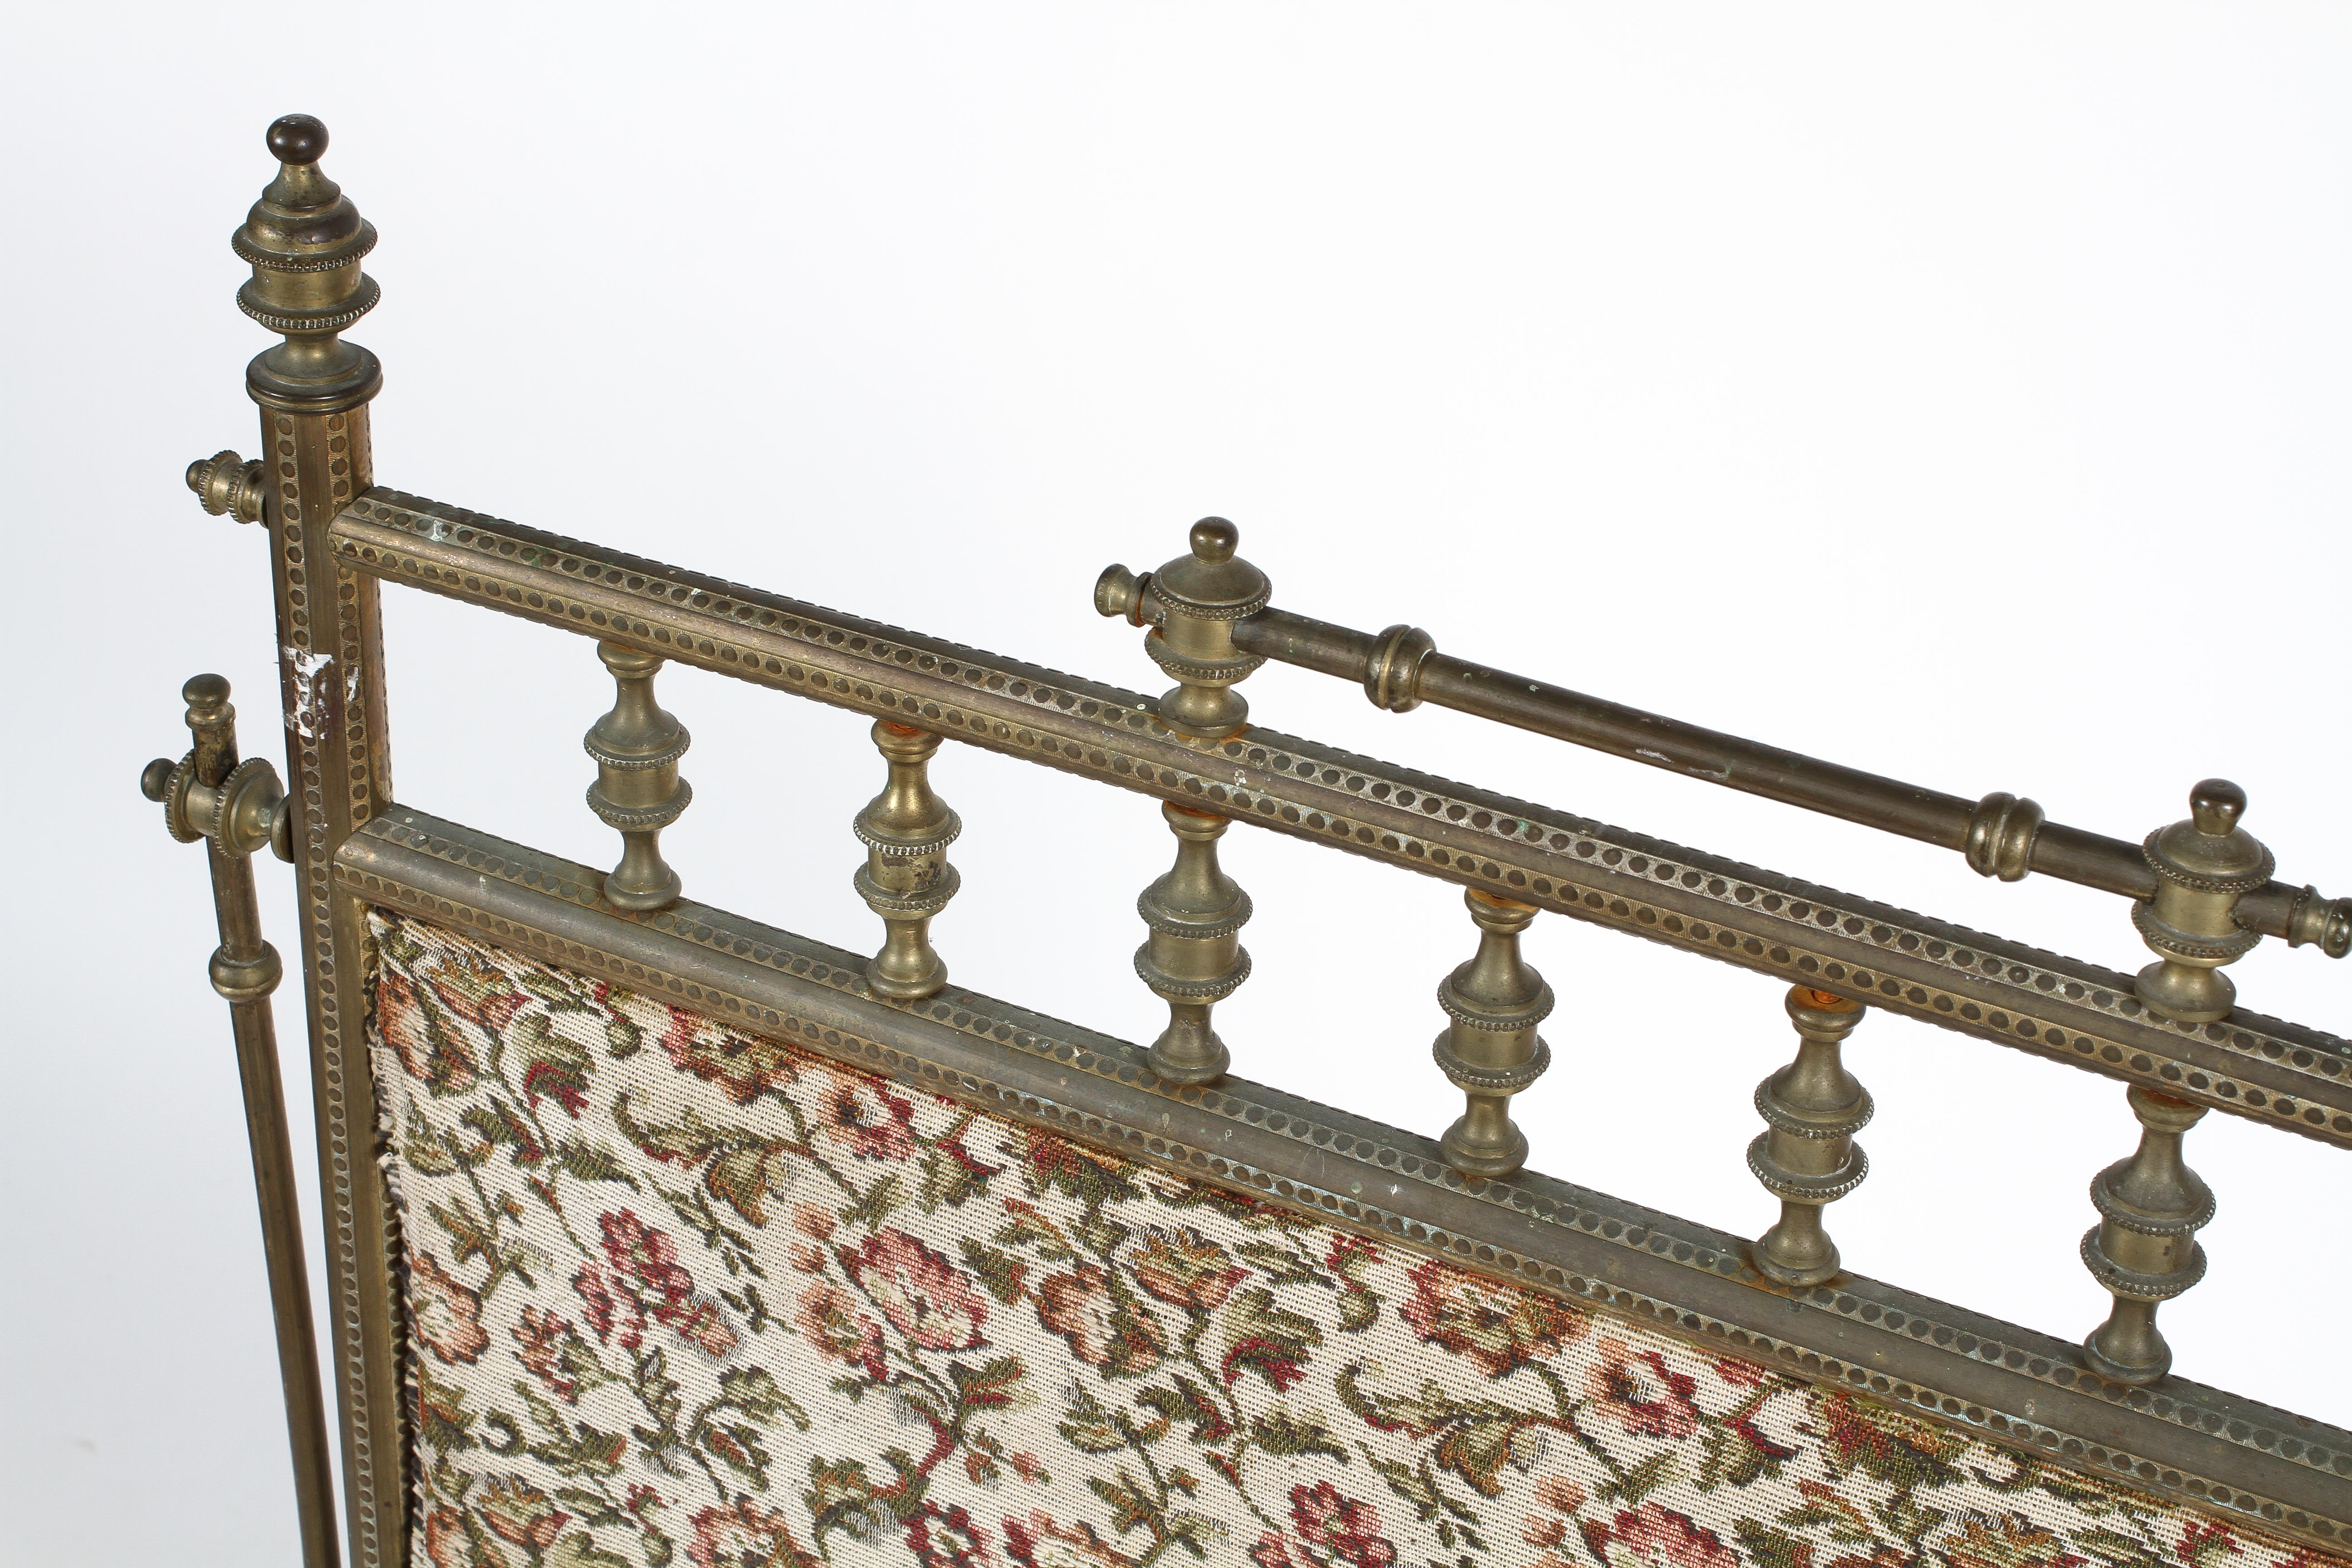 A Victorian brass fire screen, with spindle frame, mounted with tapestry style fabric, - Image 2 of 2